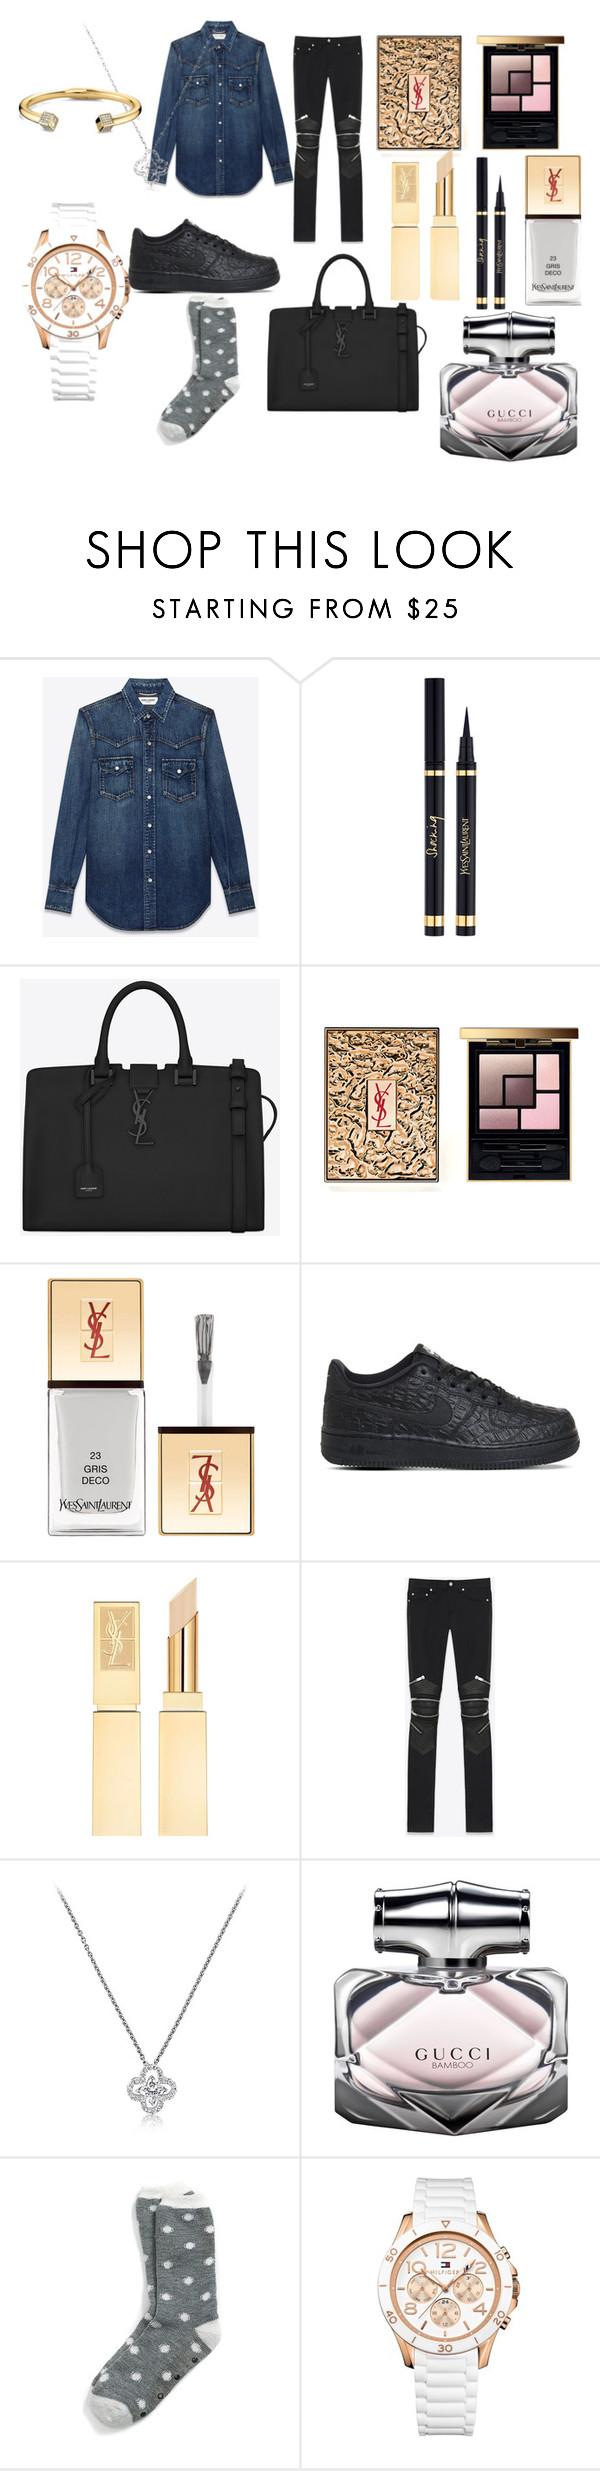 """Project 15"" by courts-rara on Polyvore featuring Yves Saint Laurent, NIKE, Gucci, Tommy Hilfiger, women's clothing, women, female, woman, misses and juniors"